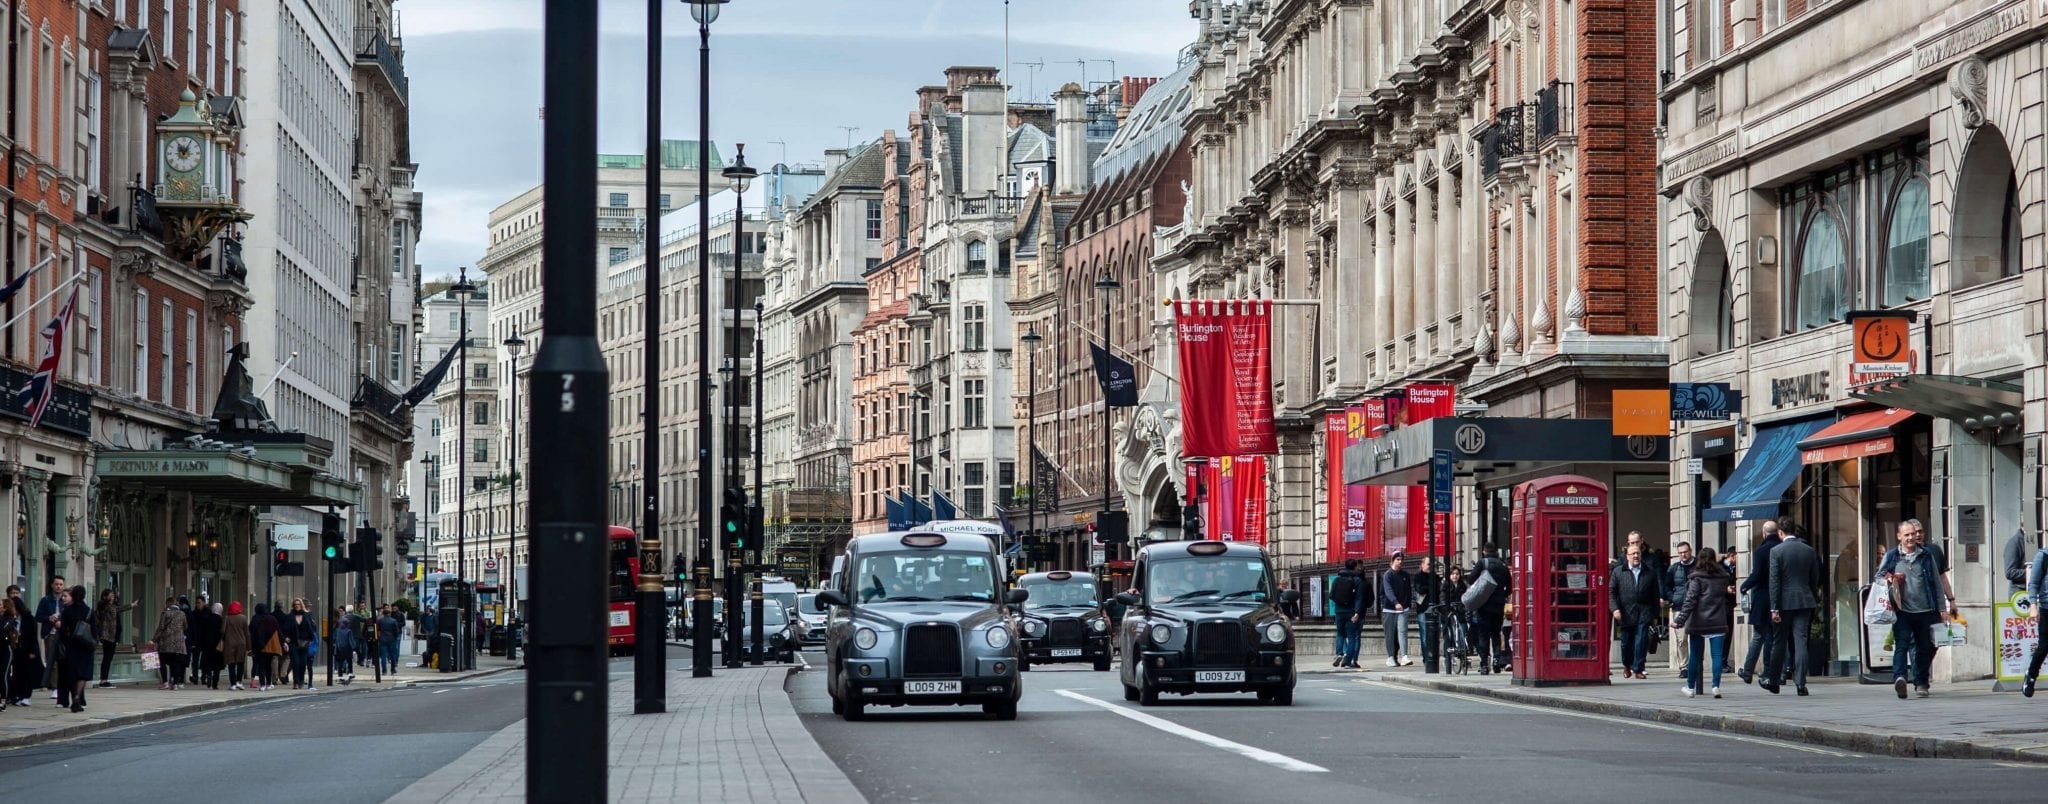 Plans Could See Cars Banned from Areas of Central London